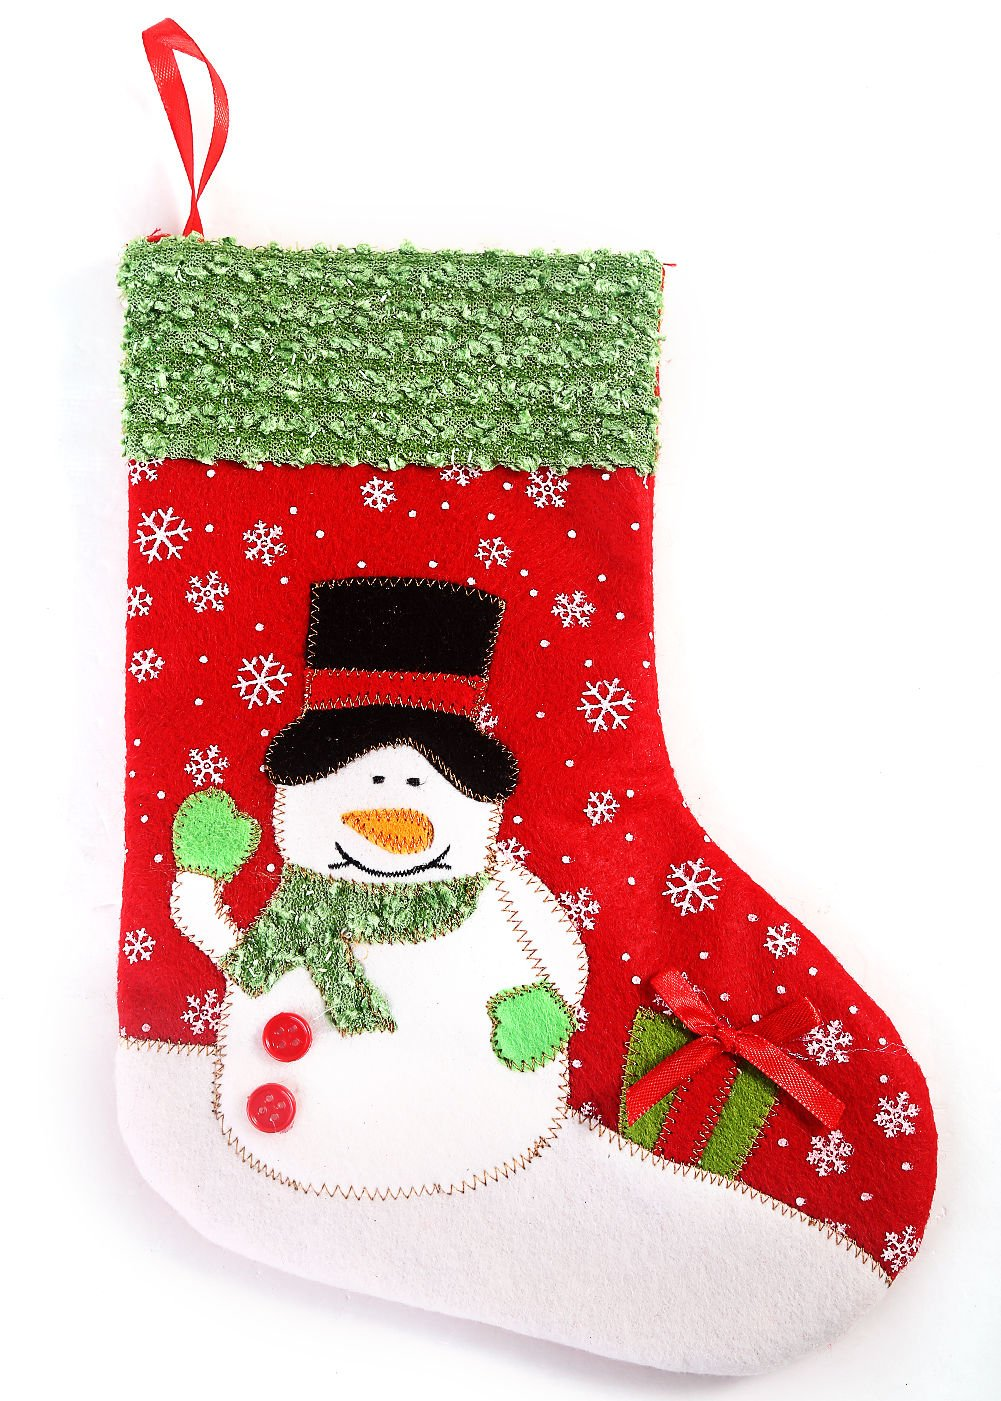 Christmas Trees Indoor Stockings Decorating Christmas Snowman/christmas Decorations Outdoor Santa Claus Christmas Bag Gift, Christmas Decorations Inflatable#snowman (3pcs)